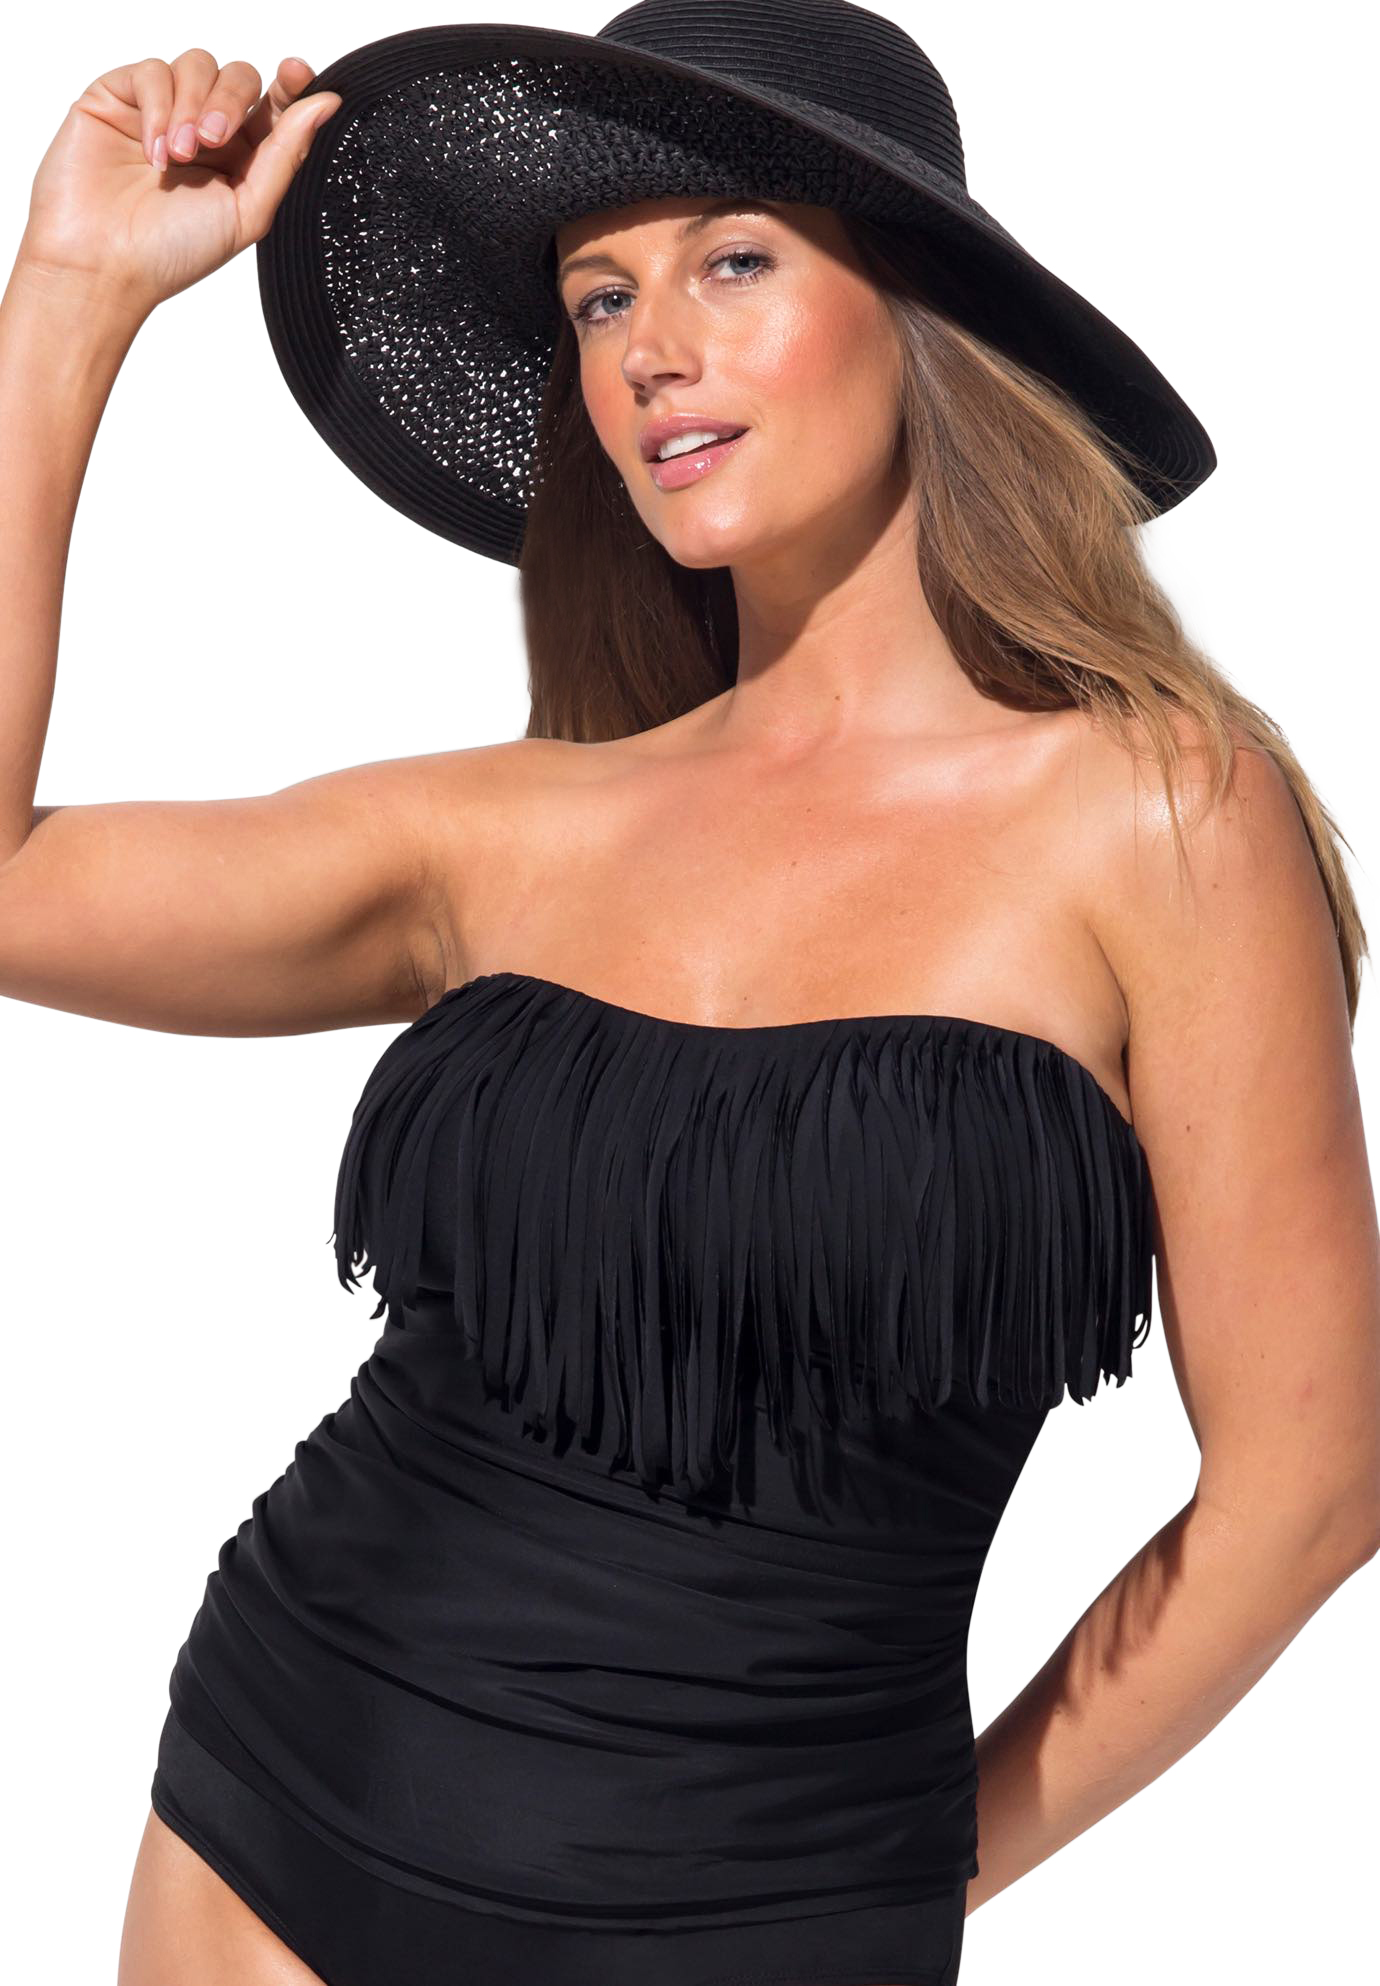 Plus Size Women's Fringe Bandeau Tankini Top by Swimsuits For All in Black